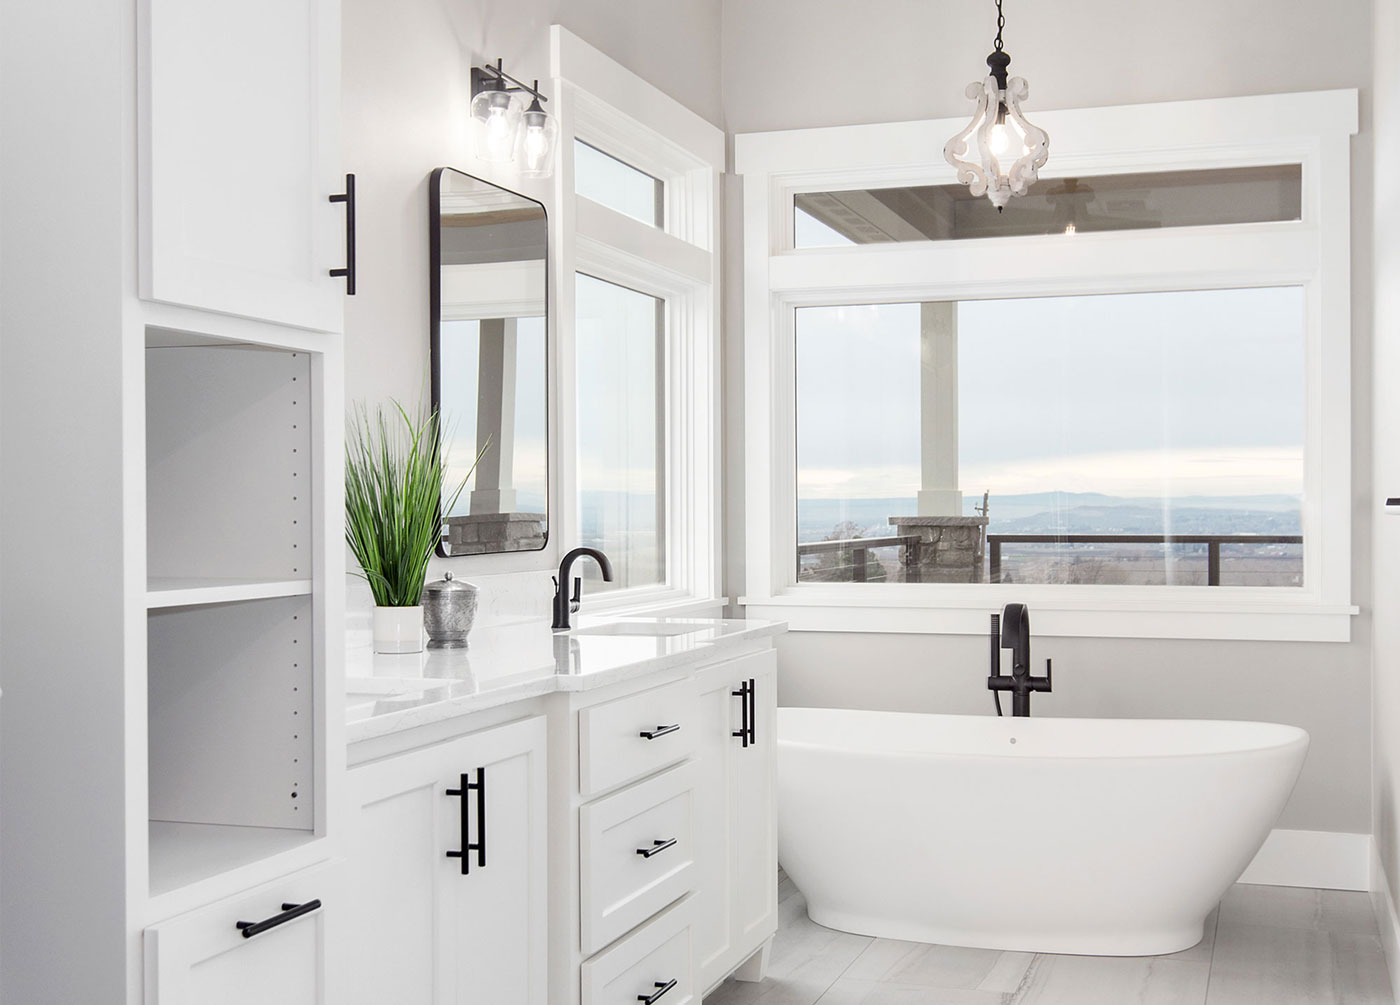 Magazine Worthy Master Bathroom With Wow